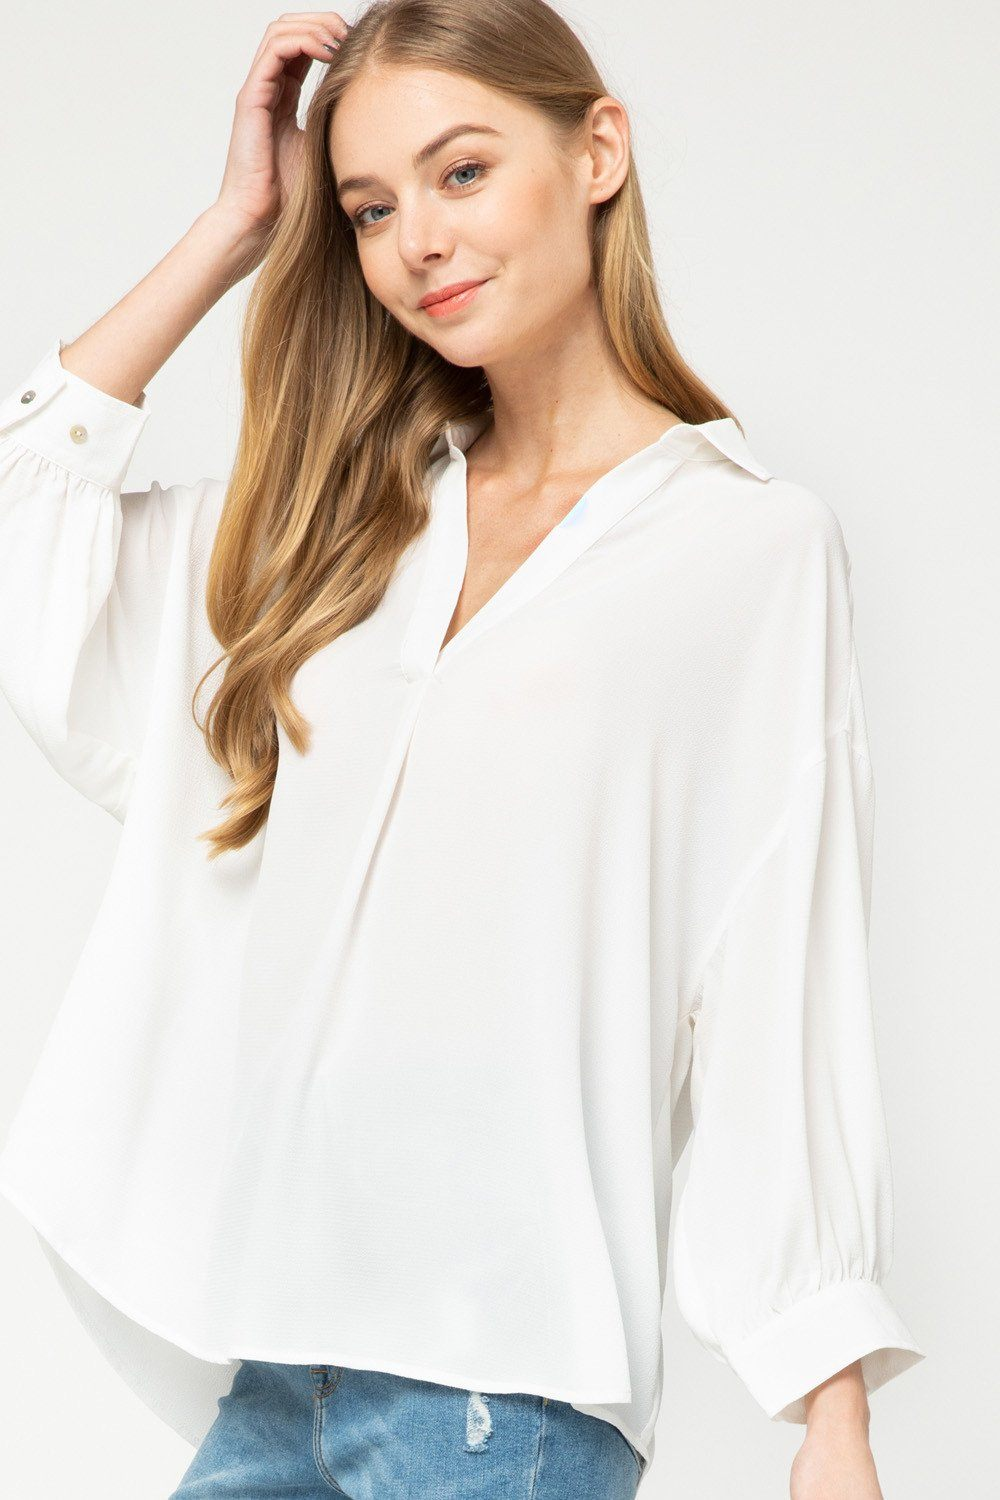 Give it to You Off White Collared Top - Caroline Hill